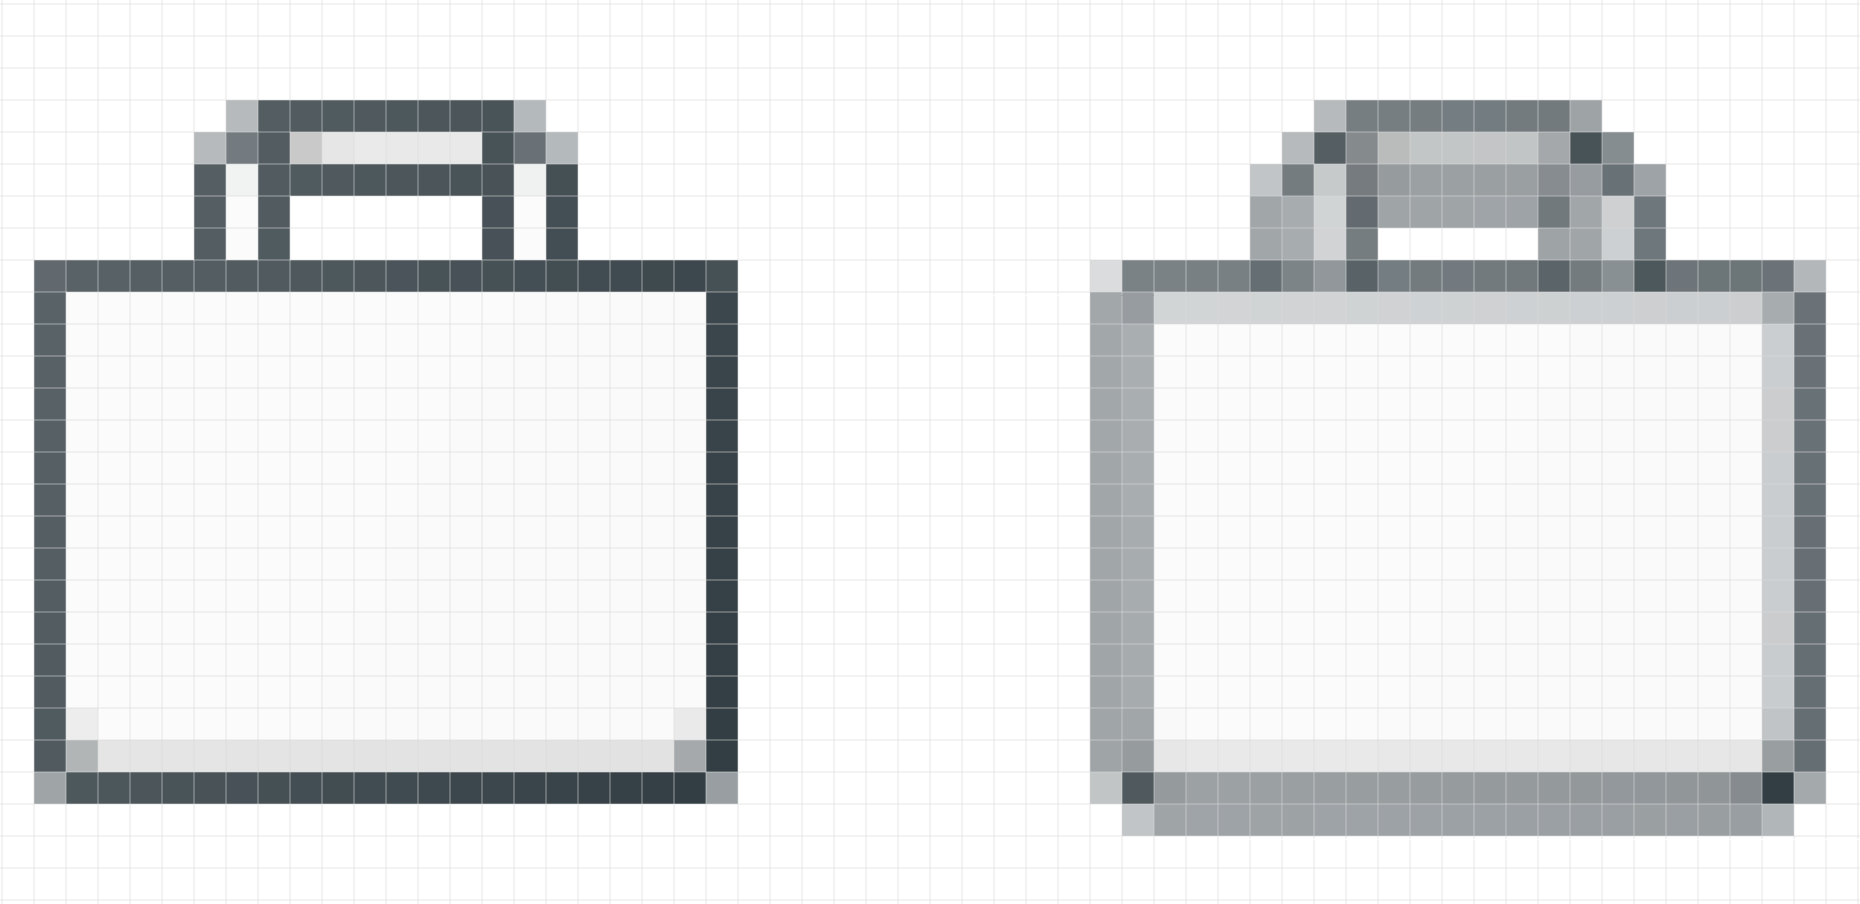 Pixel Perfect Position And Sizes